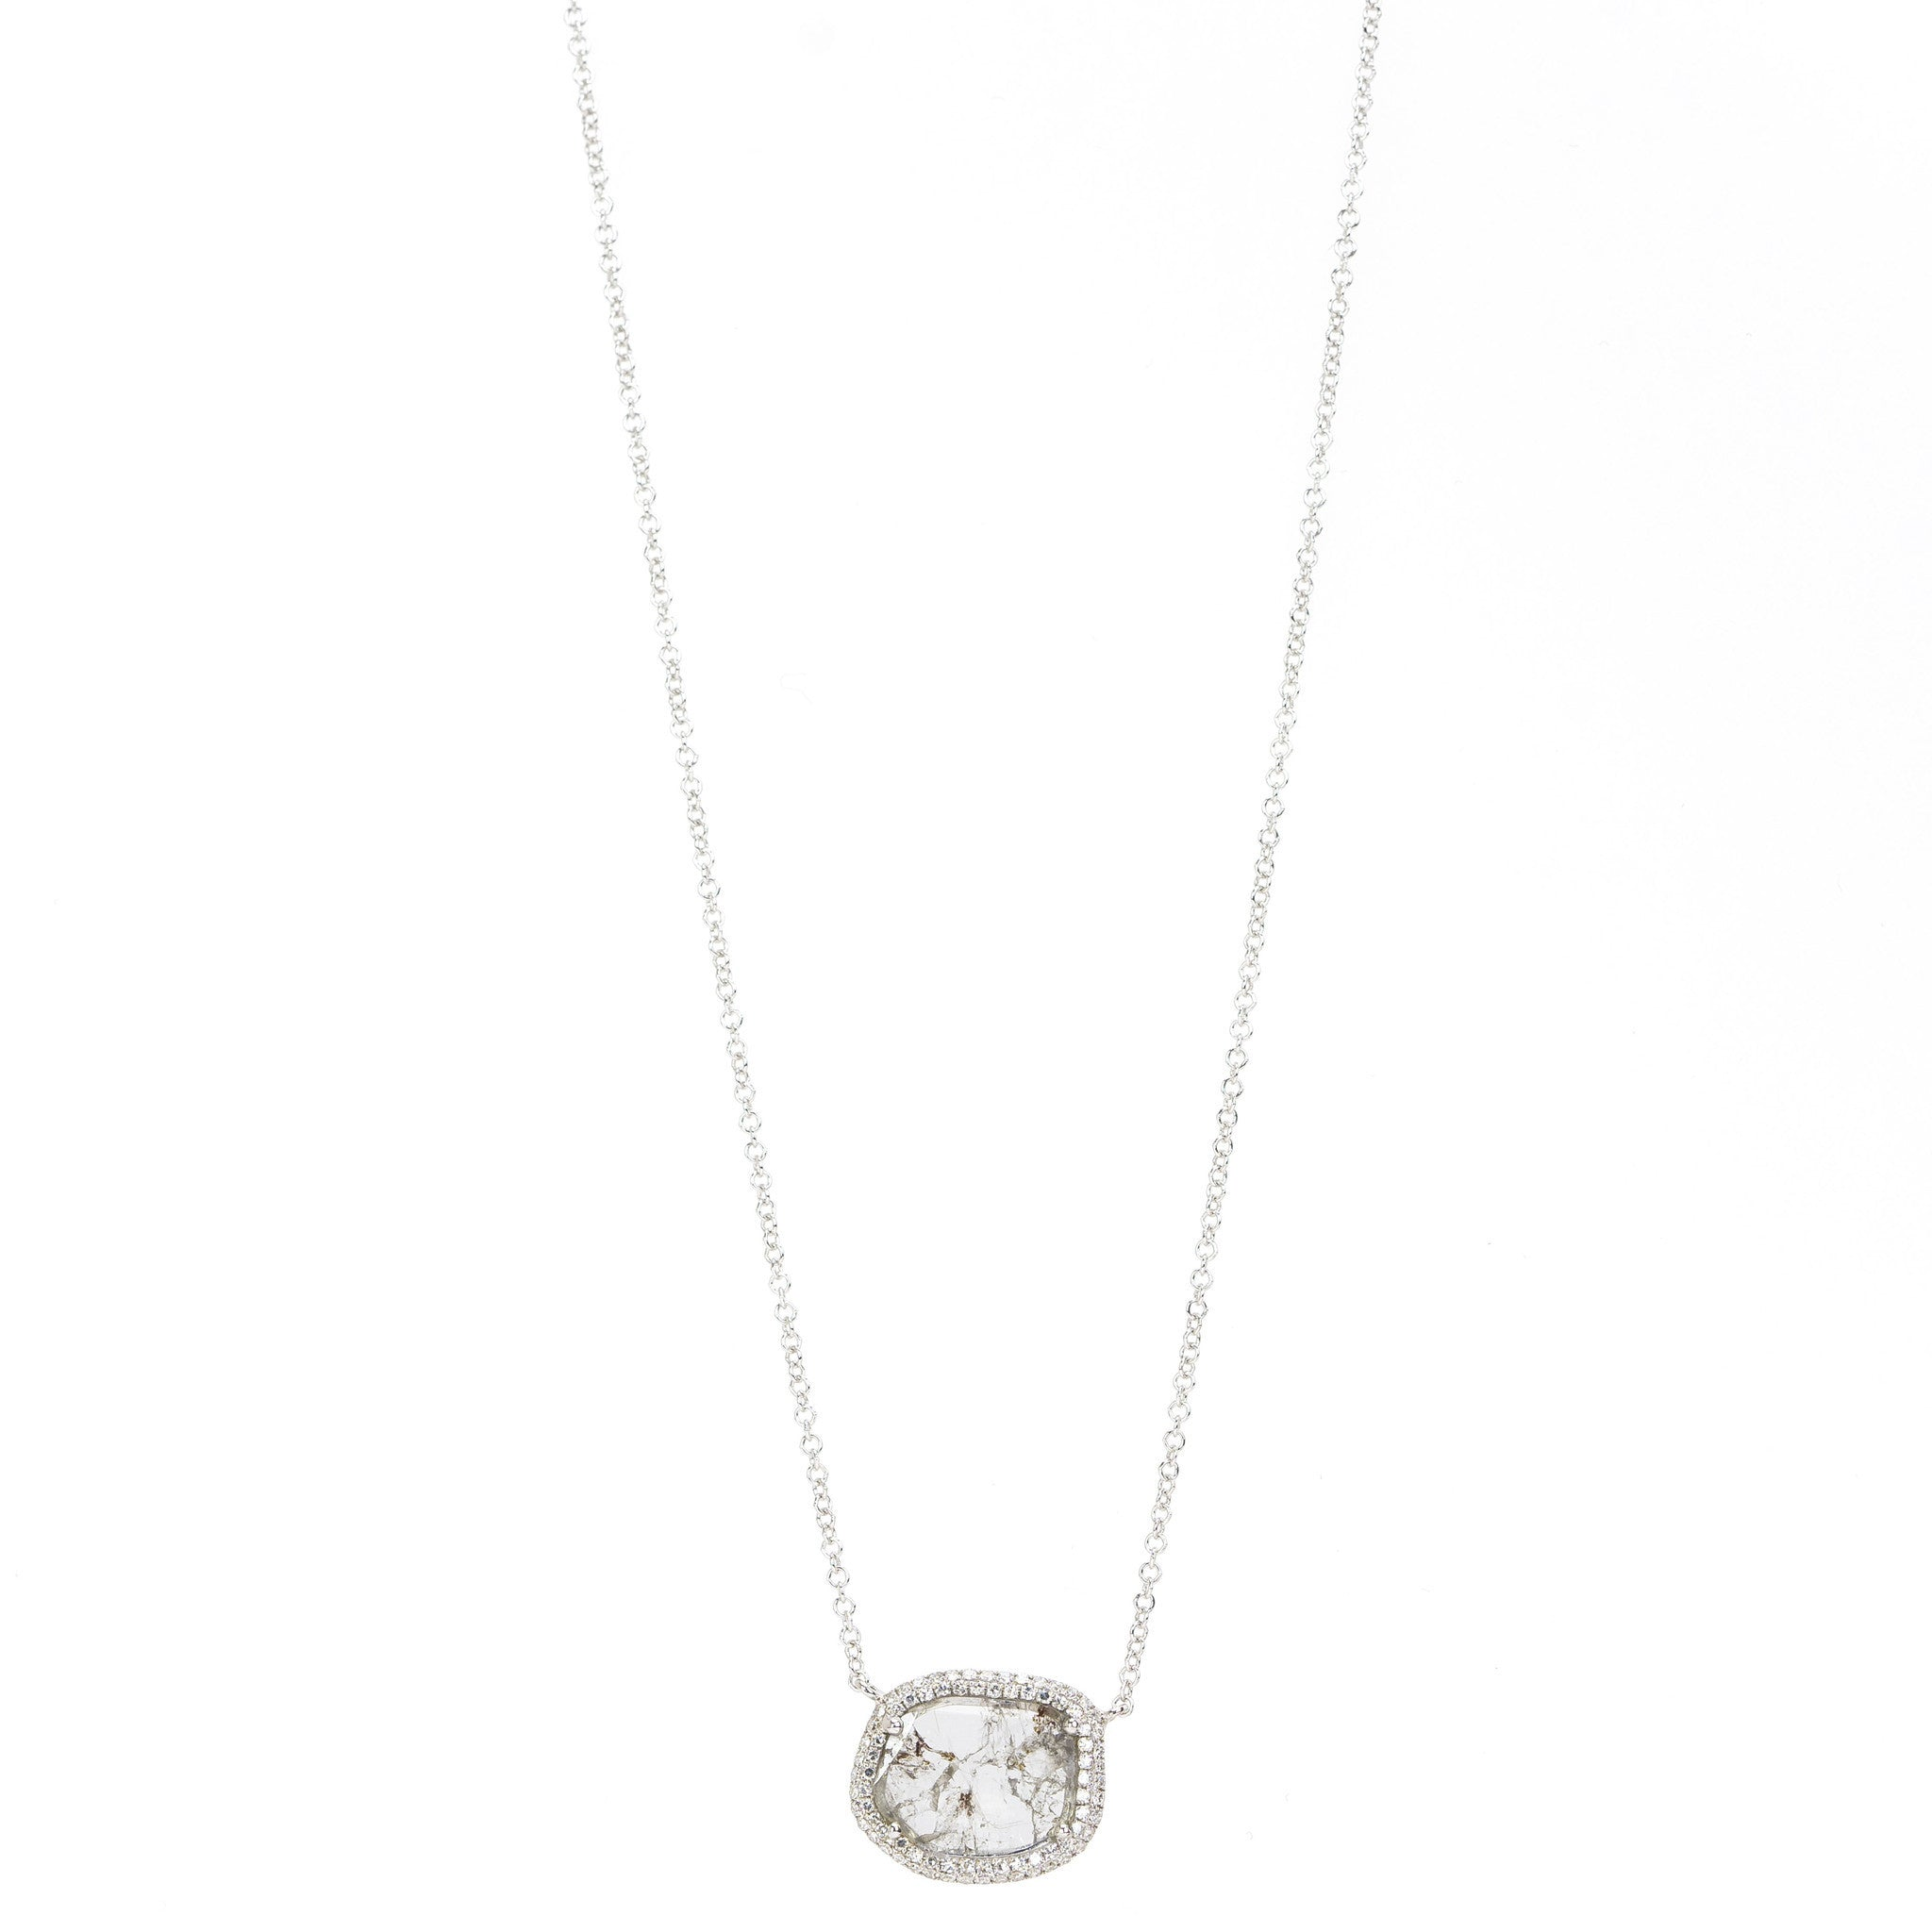 Diamond Slice Pendant with Pave Bezel Necklace by Atheria Jewelry